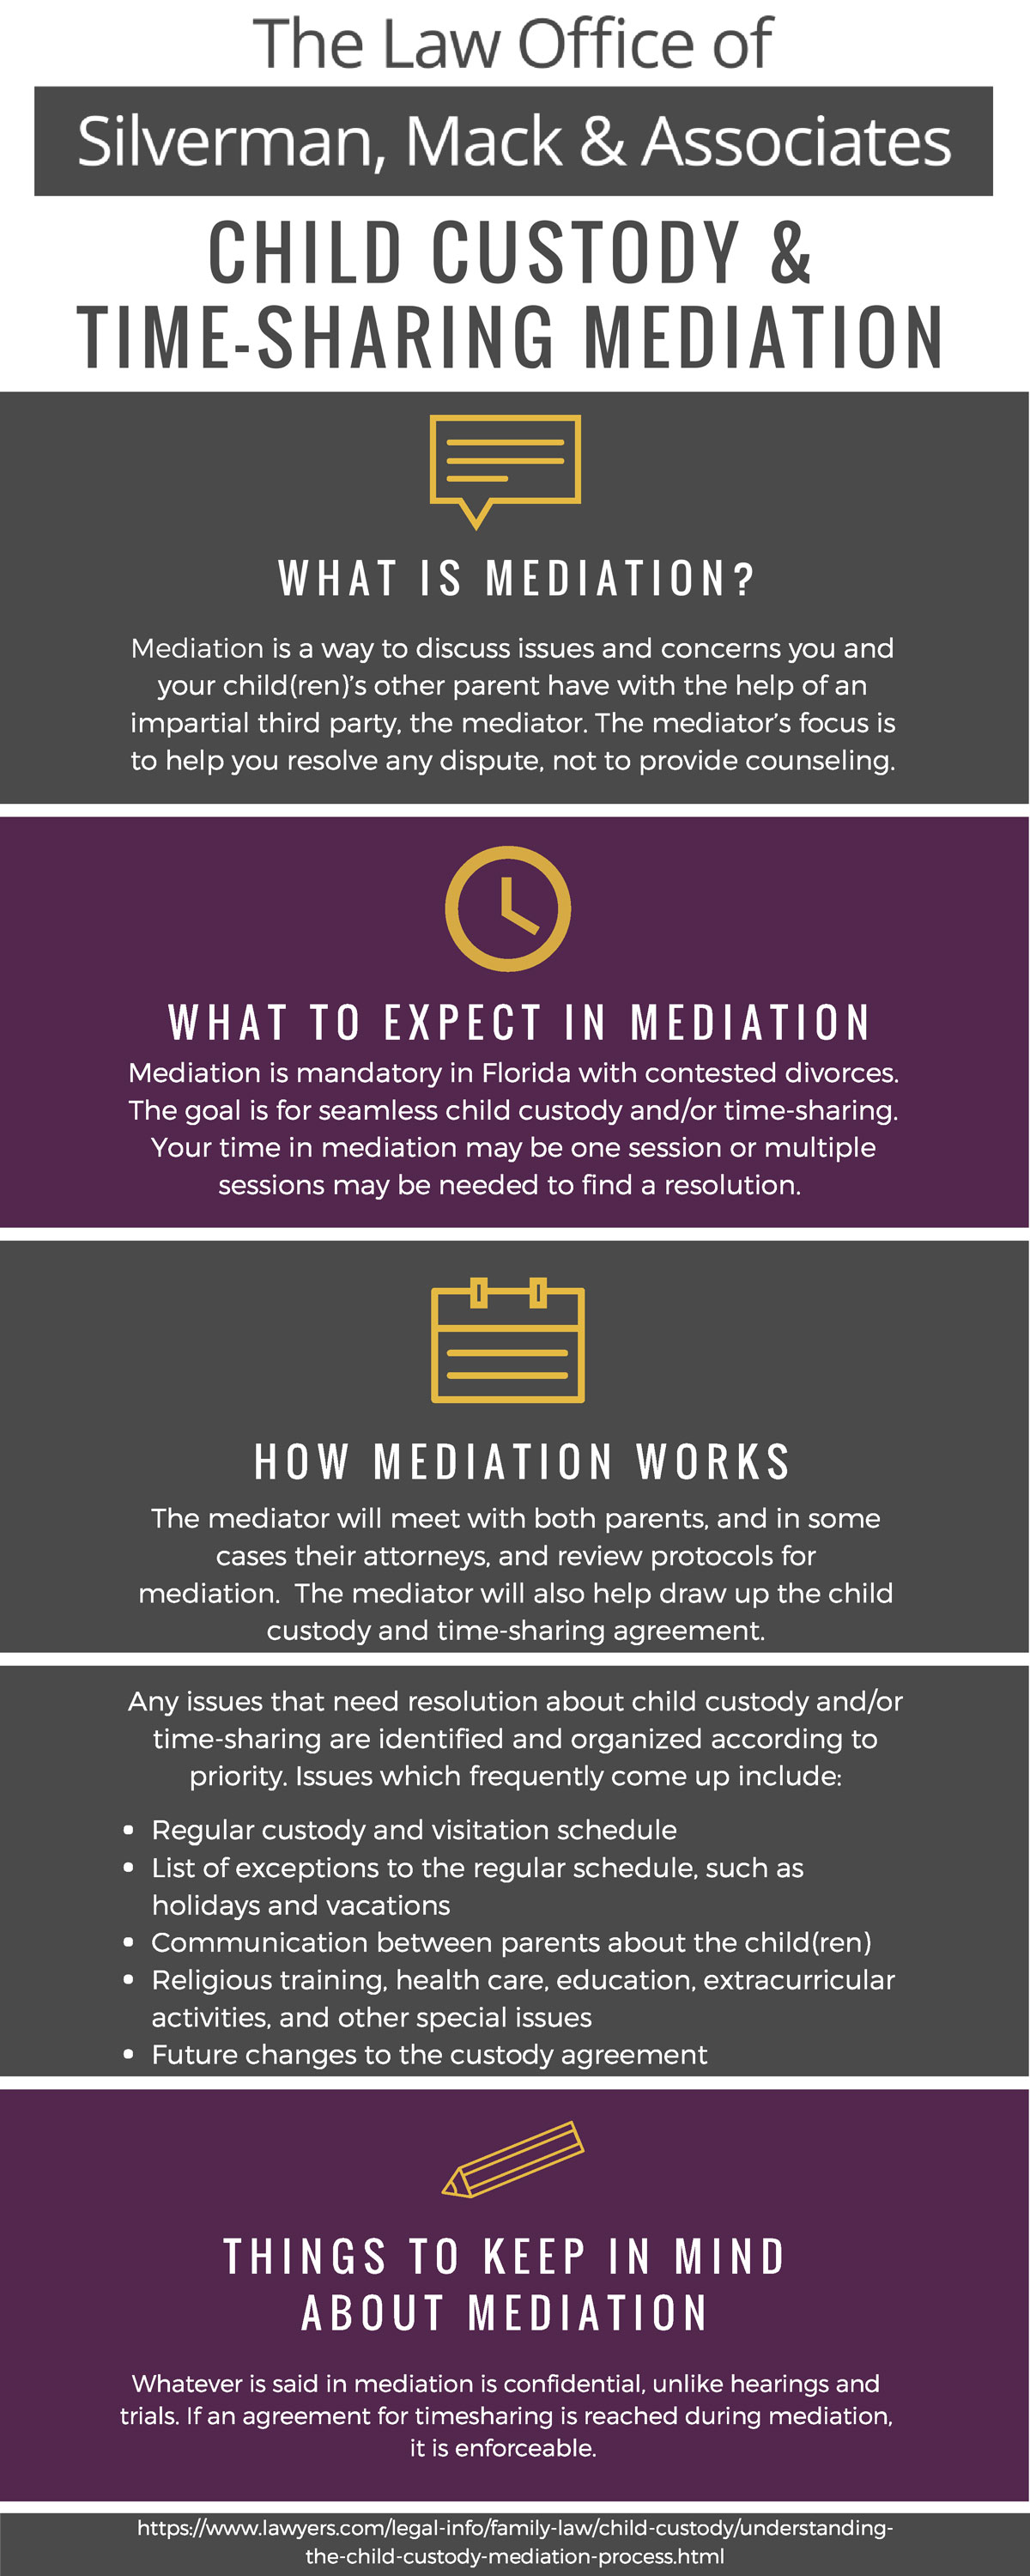 Child Custody & Time-Sharing Mediation Infographic